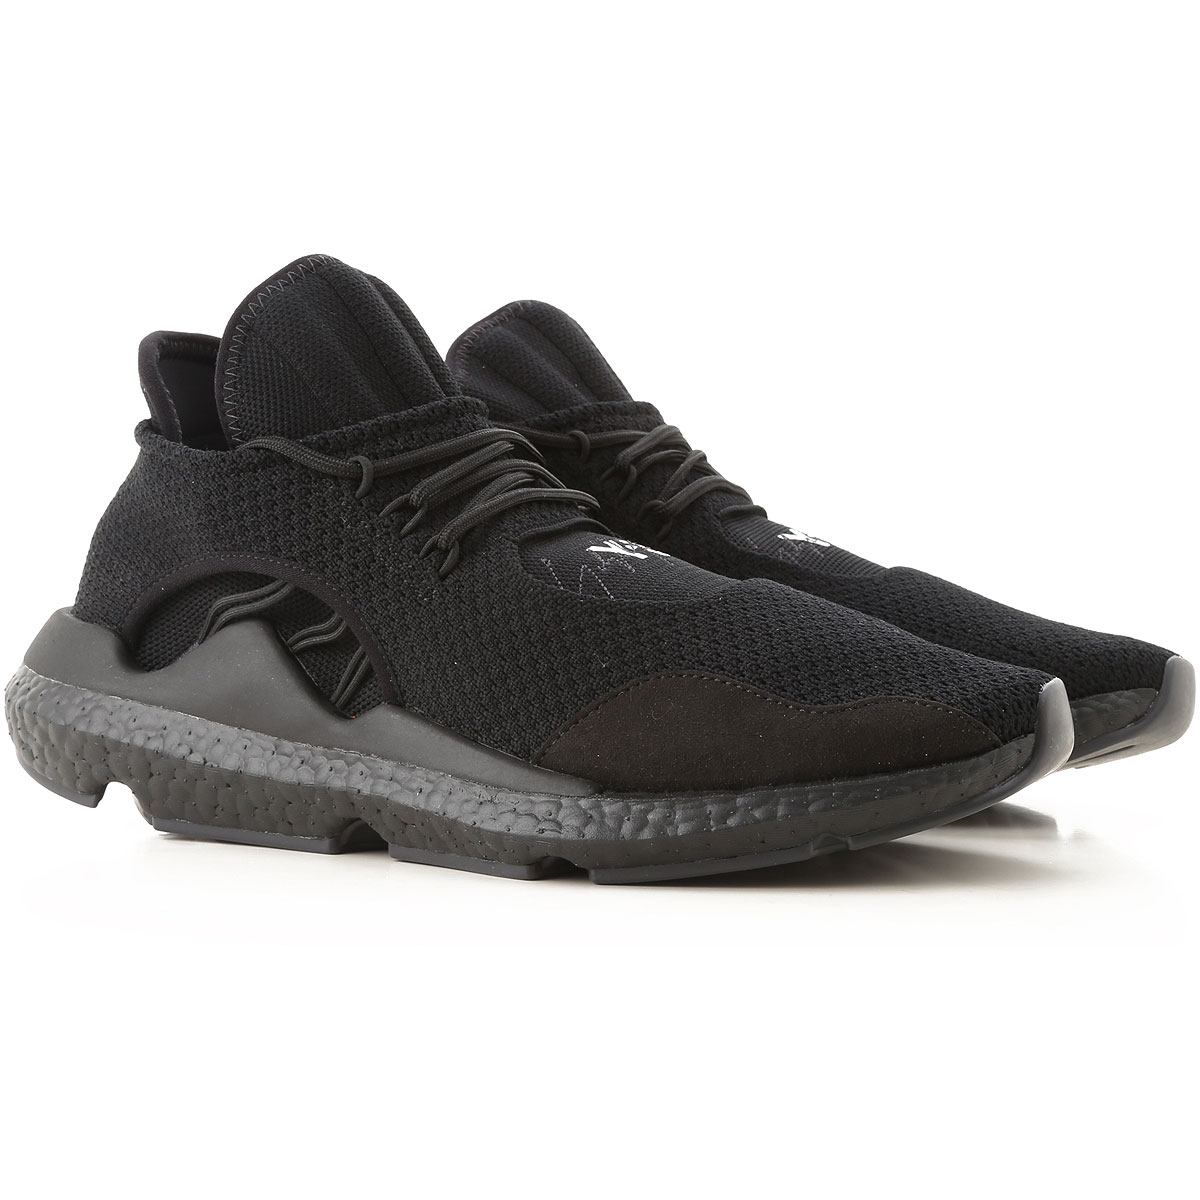 Image of Adidas Sneakers for Men, Black, Fabric, 2017, 10 10.5 11 8.5 9 9.5